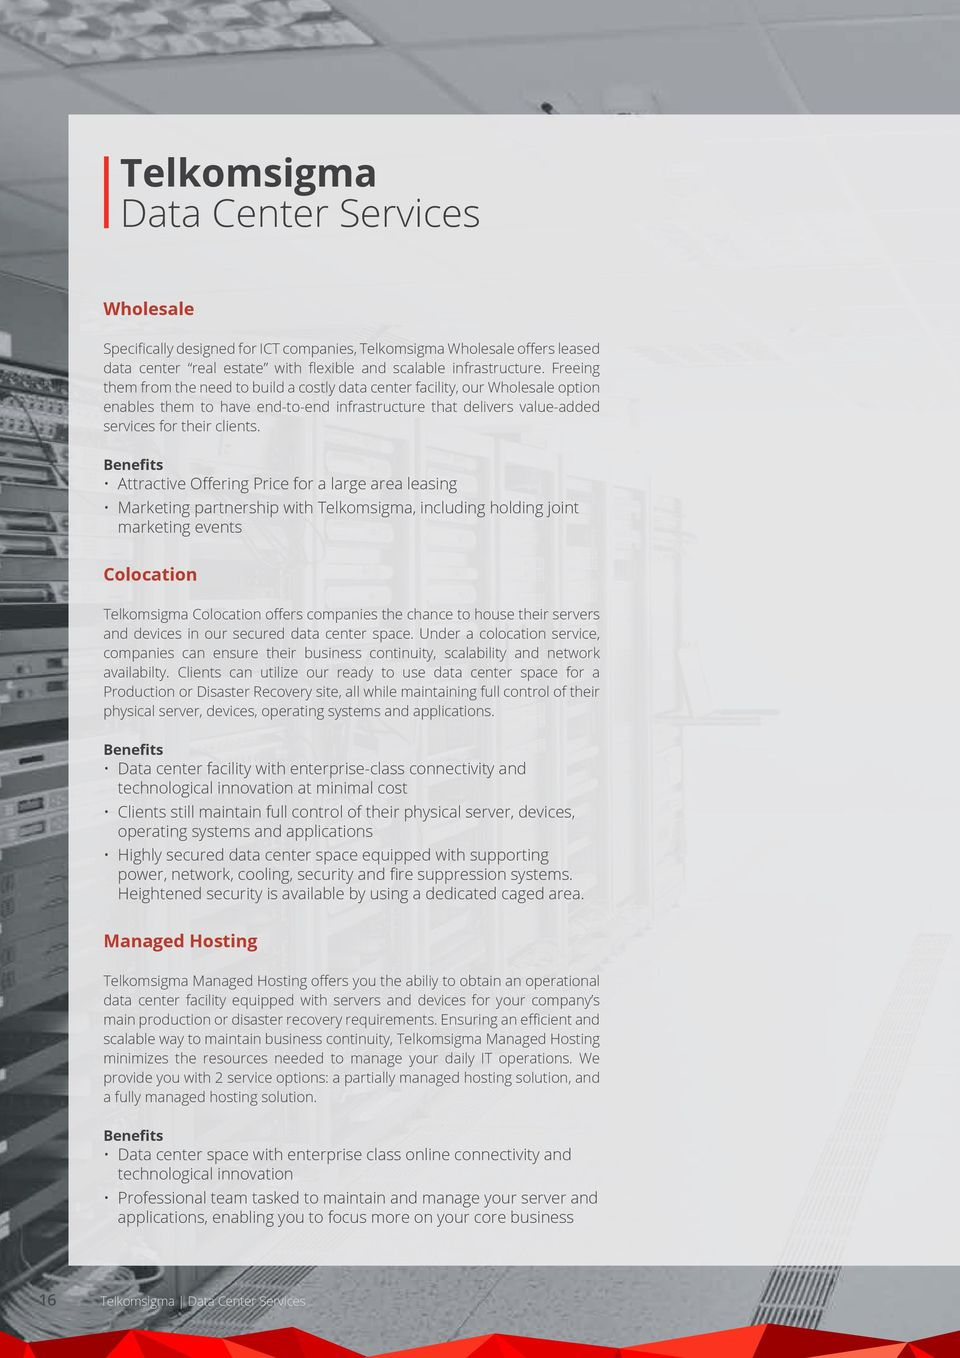 Benefits Attractive Offering Price for a large area leasing Marketing partnership with Telkomsigma, including holding joint marketing events Colocation Telkomsigma Colocation offers companies the